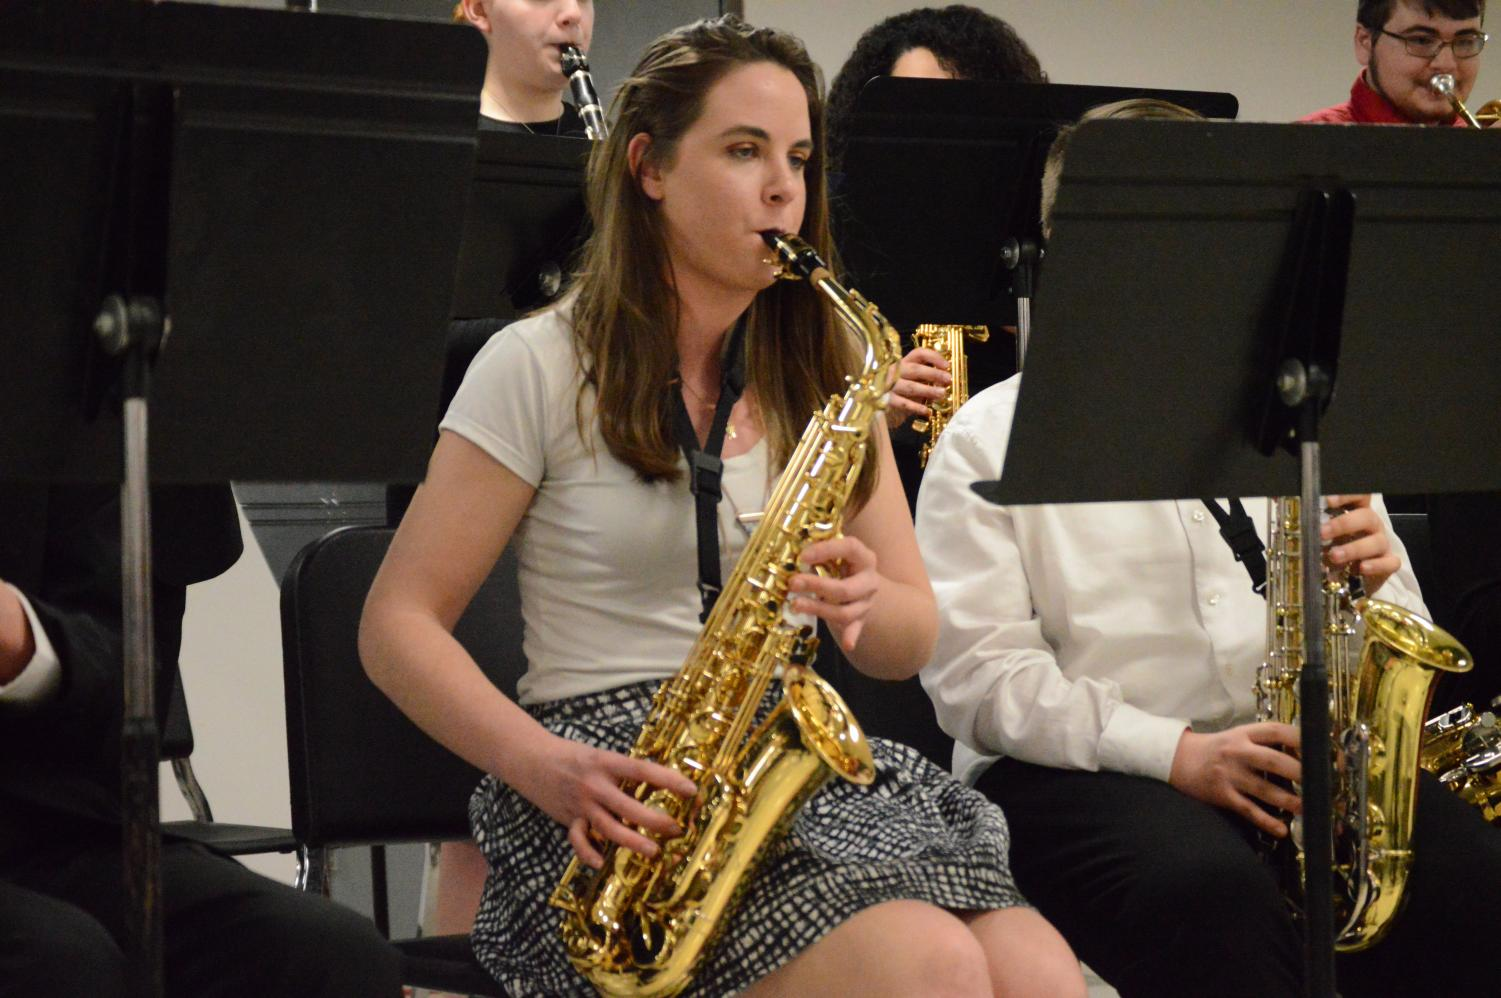 Senior+Amy+Norris+plays+her+solo+in+the+Jazz+band+concert+on+Feb.+26.